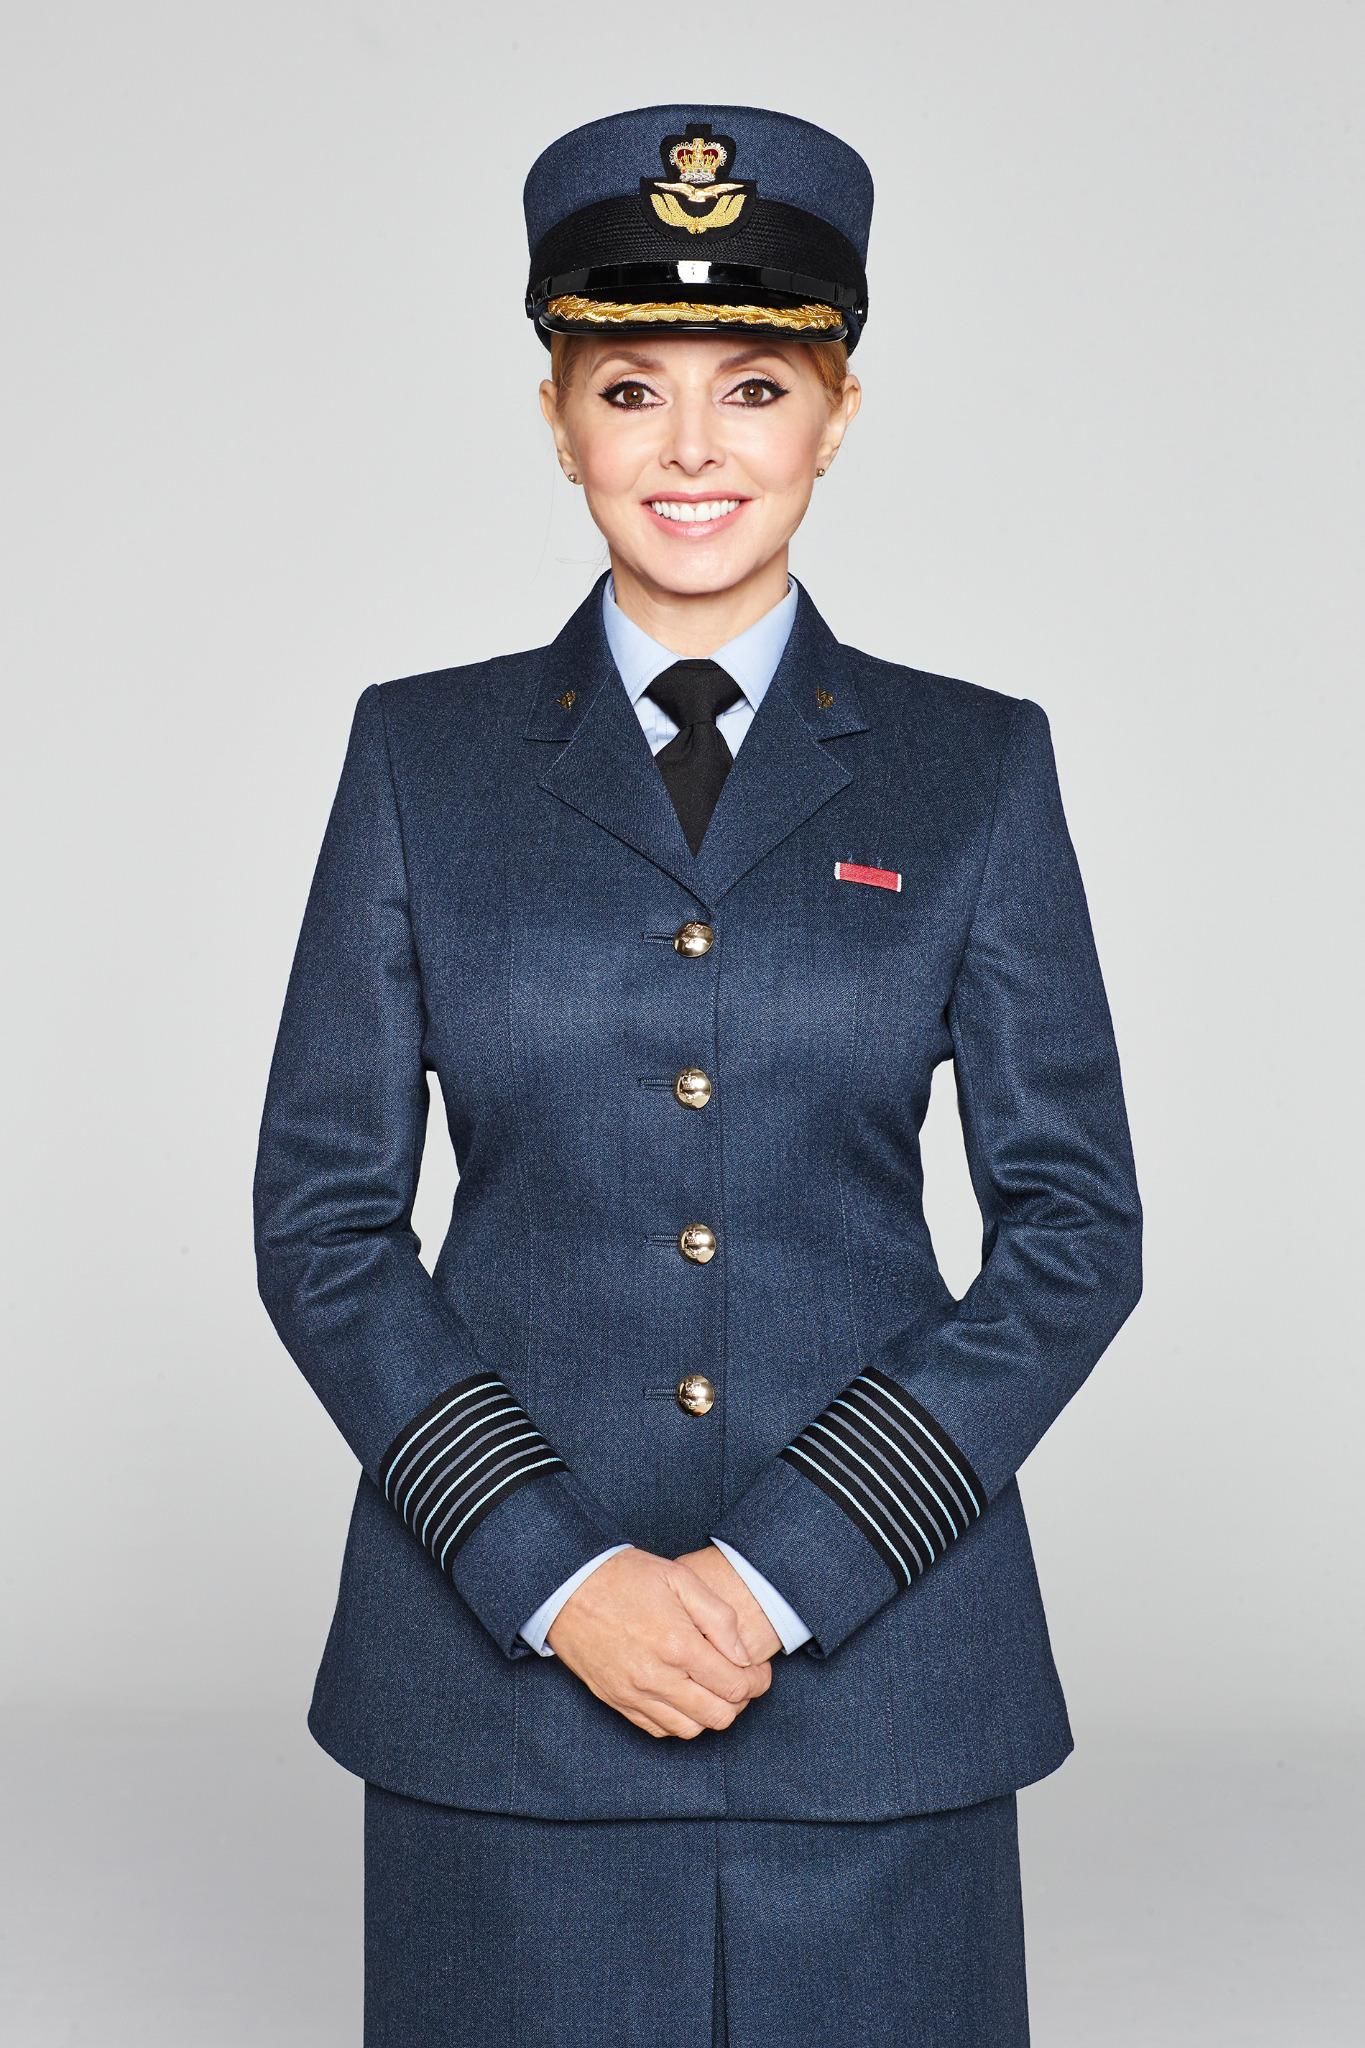 RT @RoyalAirForceUK: Gp Capt @carolvorders is First Female Honorary Ambassador For RAF Air Cadets. http://t.co/azQ90WWjzx http://t.co/PpsF5…